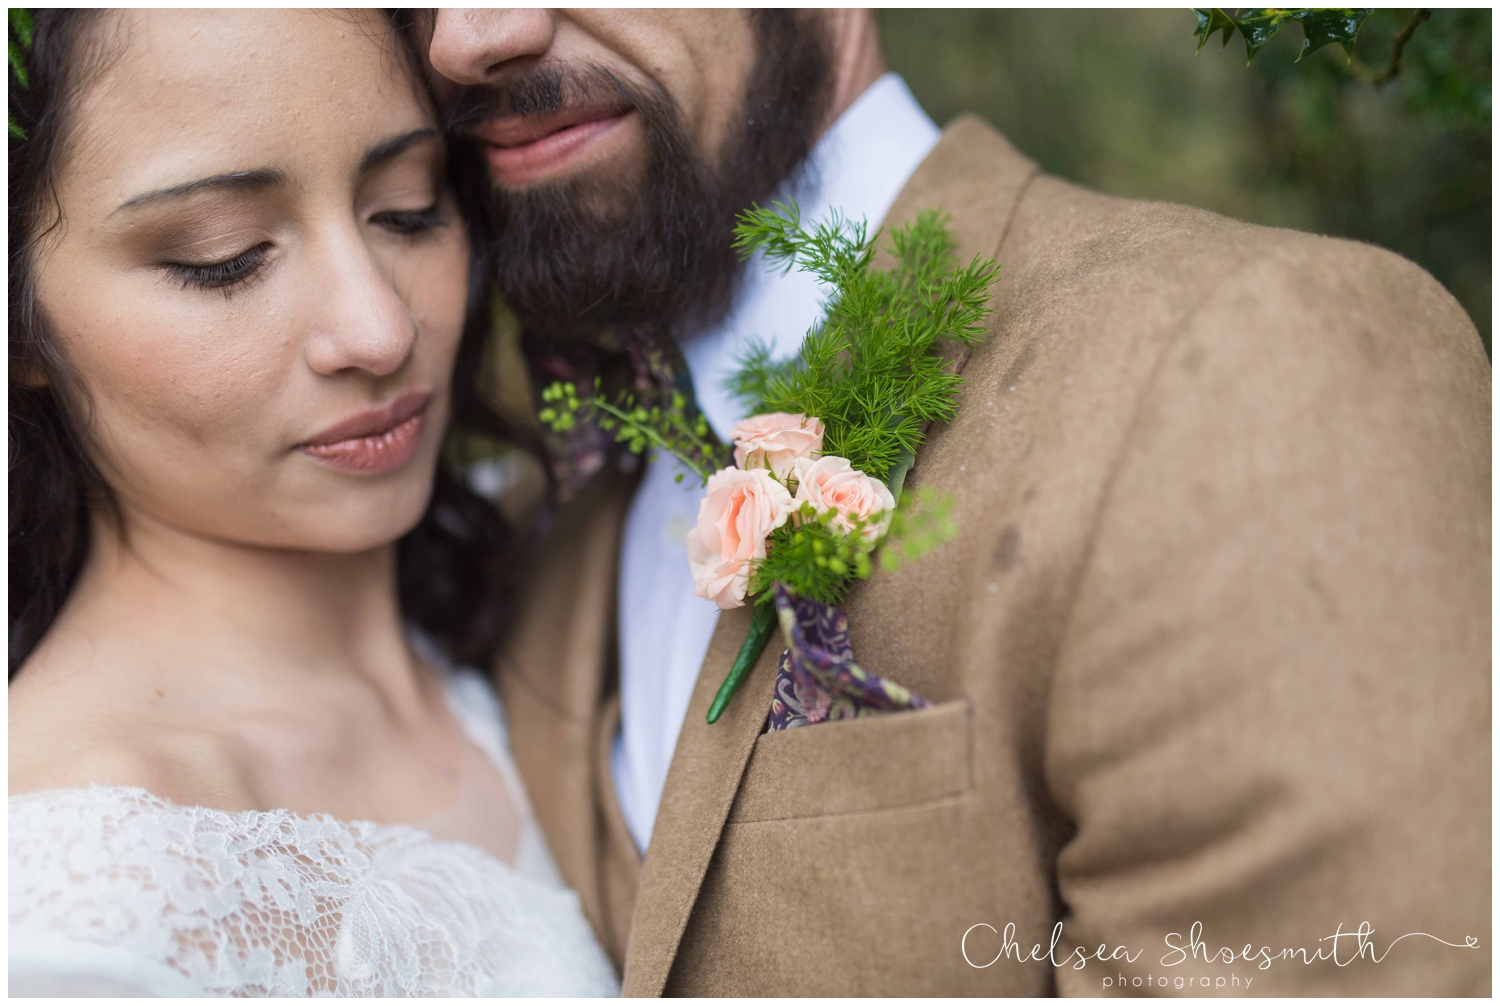 (85 of 183) Deya & Craig Bridal Styled Shoot Teggsnose country park macclesfield cheshire wedding photographer chelsea shoesmith photography_